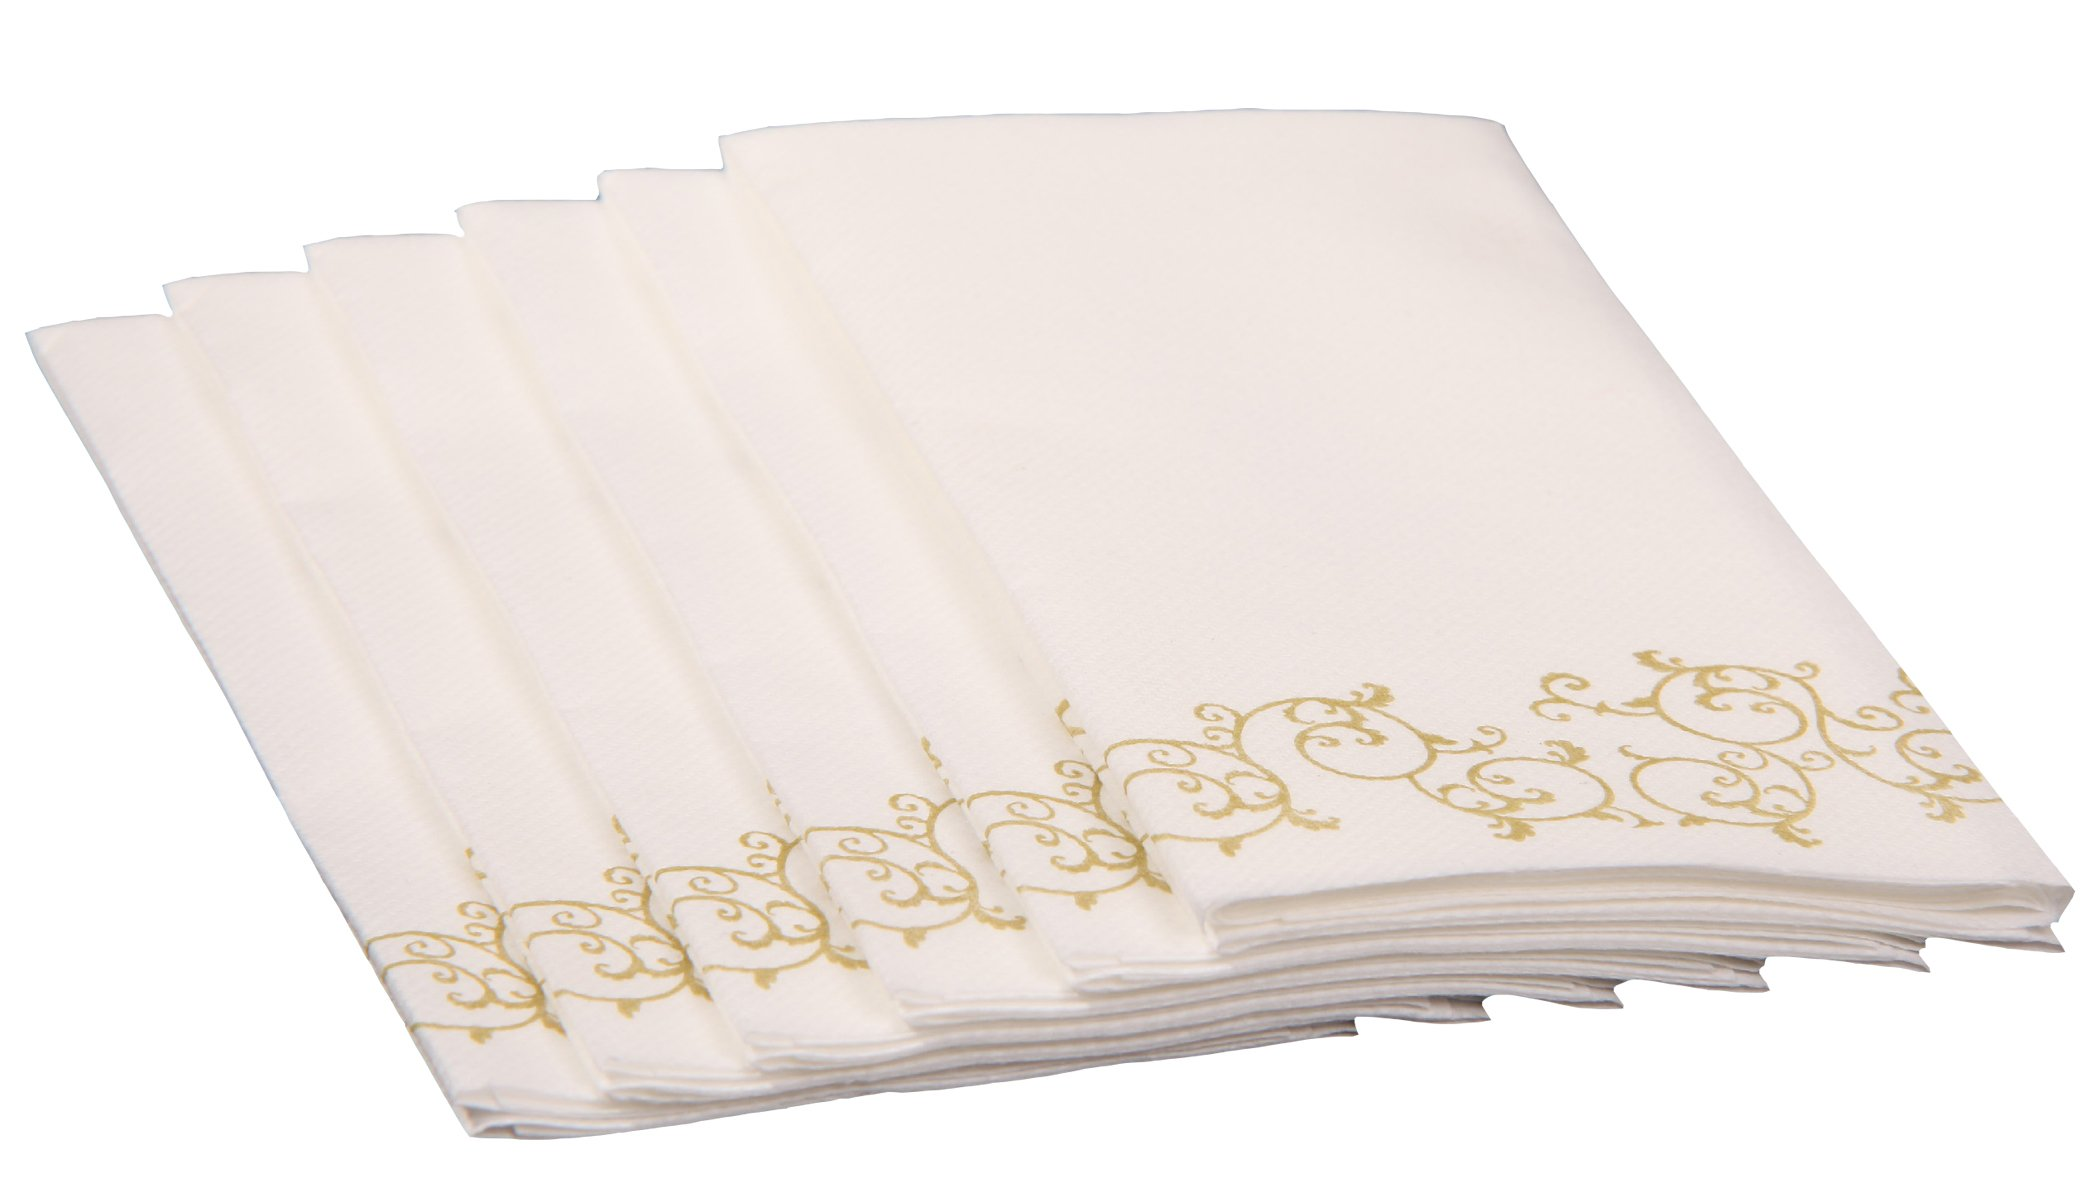 Simulinen Guest Towels for Bathroom - Gold Floral - Disposable Paper Towels - Box of 100 - Perfect Size: 12x17 inches Unfolded & 8.5x4 inches Folded